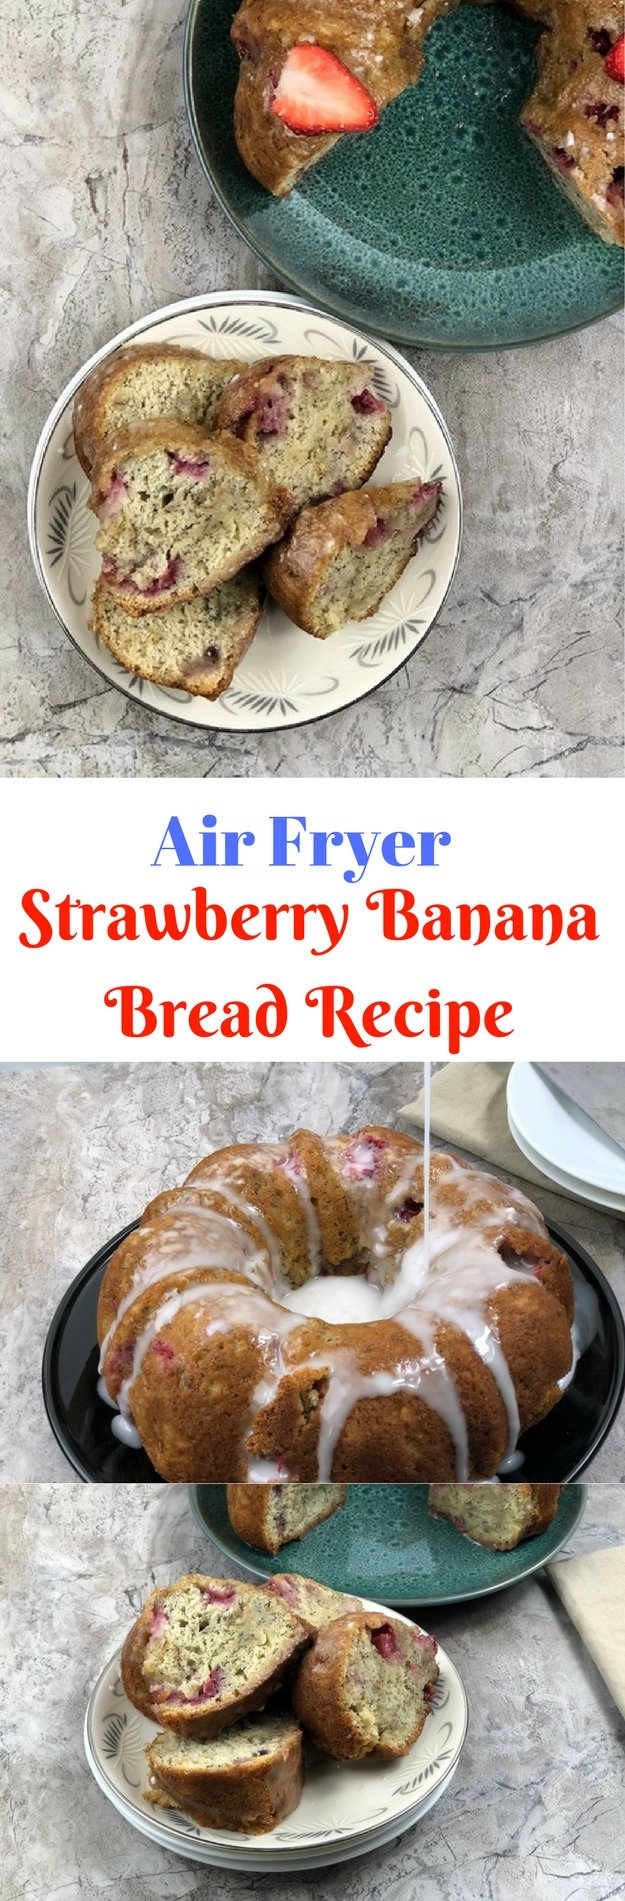 Air Fryer Strawberry Banana BreadRecipe the most magical things on earth include strawberries and bananas.I mean think about that breakfast smoothie you had with the strawberries and bananas, it was great, wasn't it. This bread was almost orgasmic, can I say that?